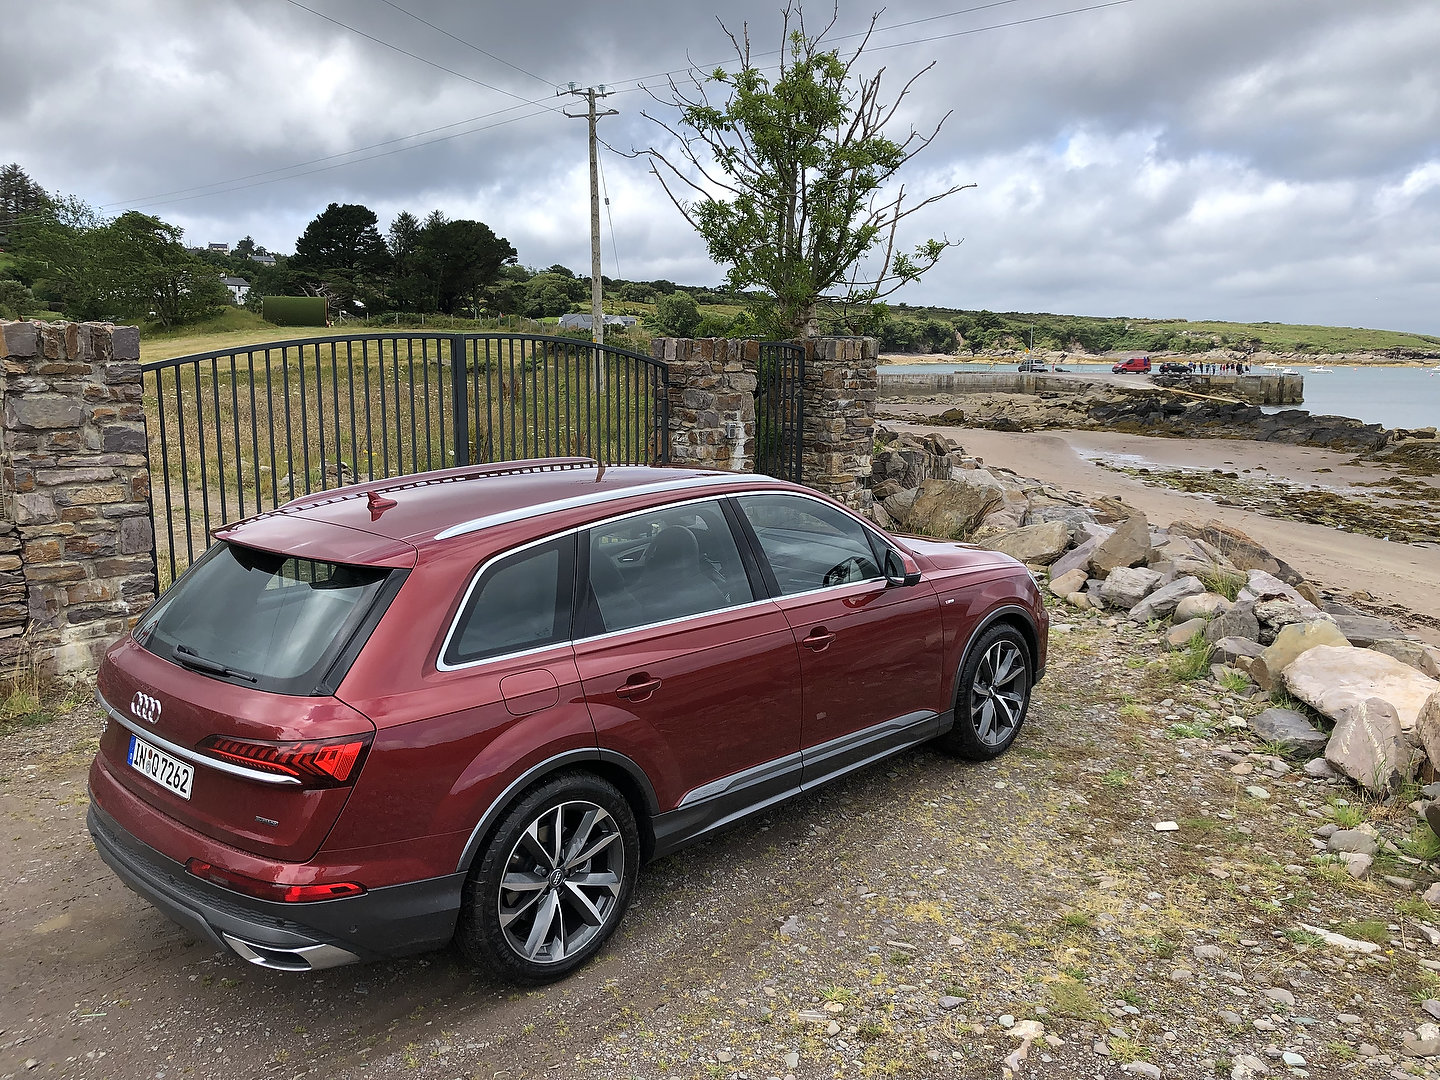 2020 Audi Q7 Review.2020 Audi Q7 First Drive Review It Wasn T Broke But They